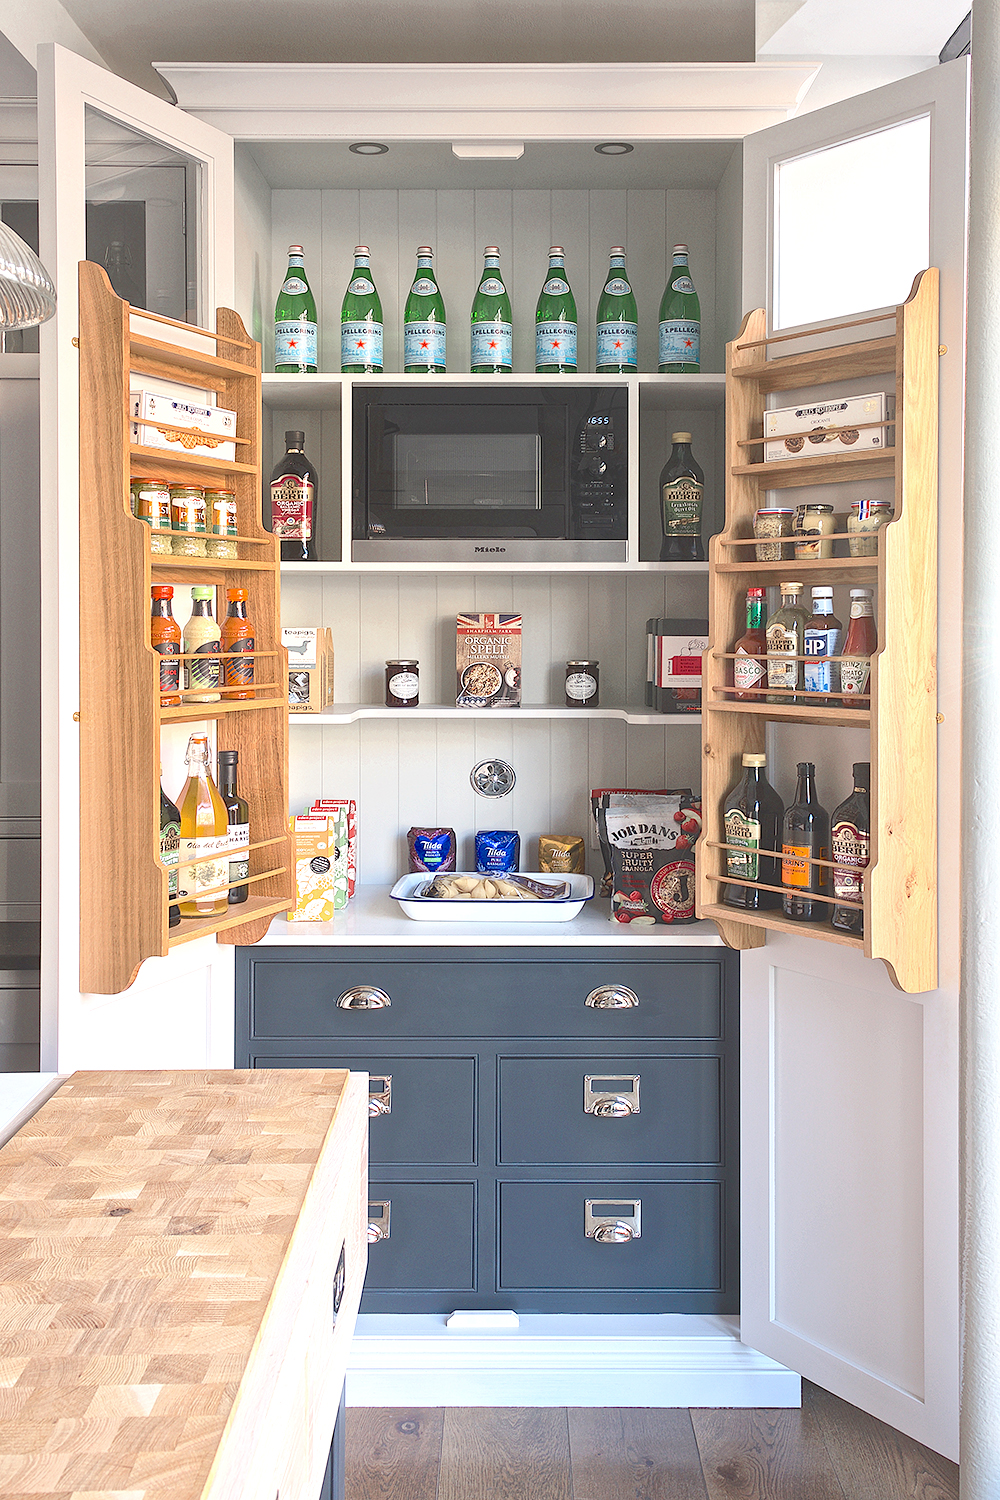 Open larder with white frame and doors and solid oak door racks with bottom drawers painted in MyLands Bond Street and Miele microwave.